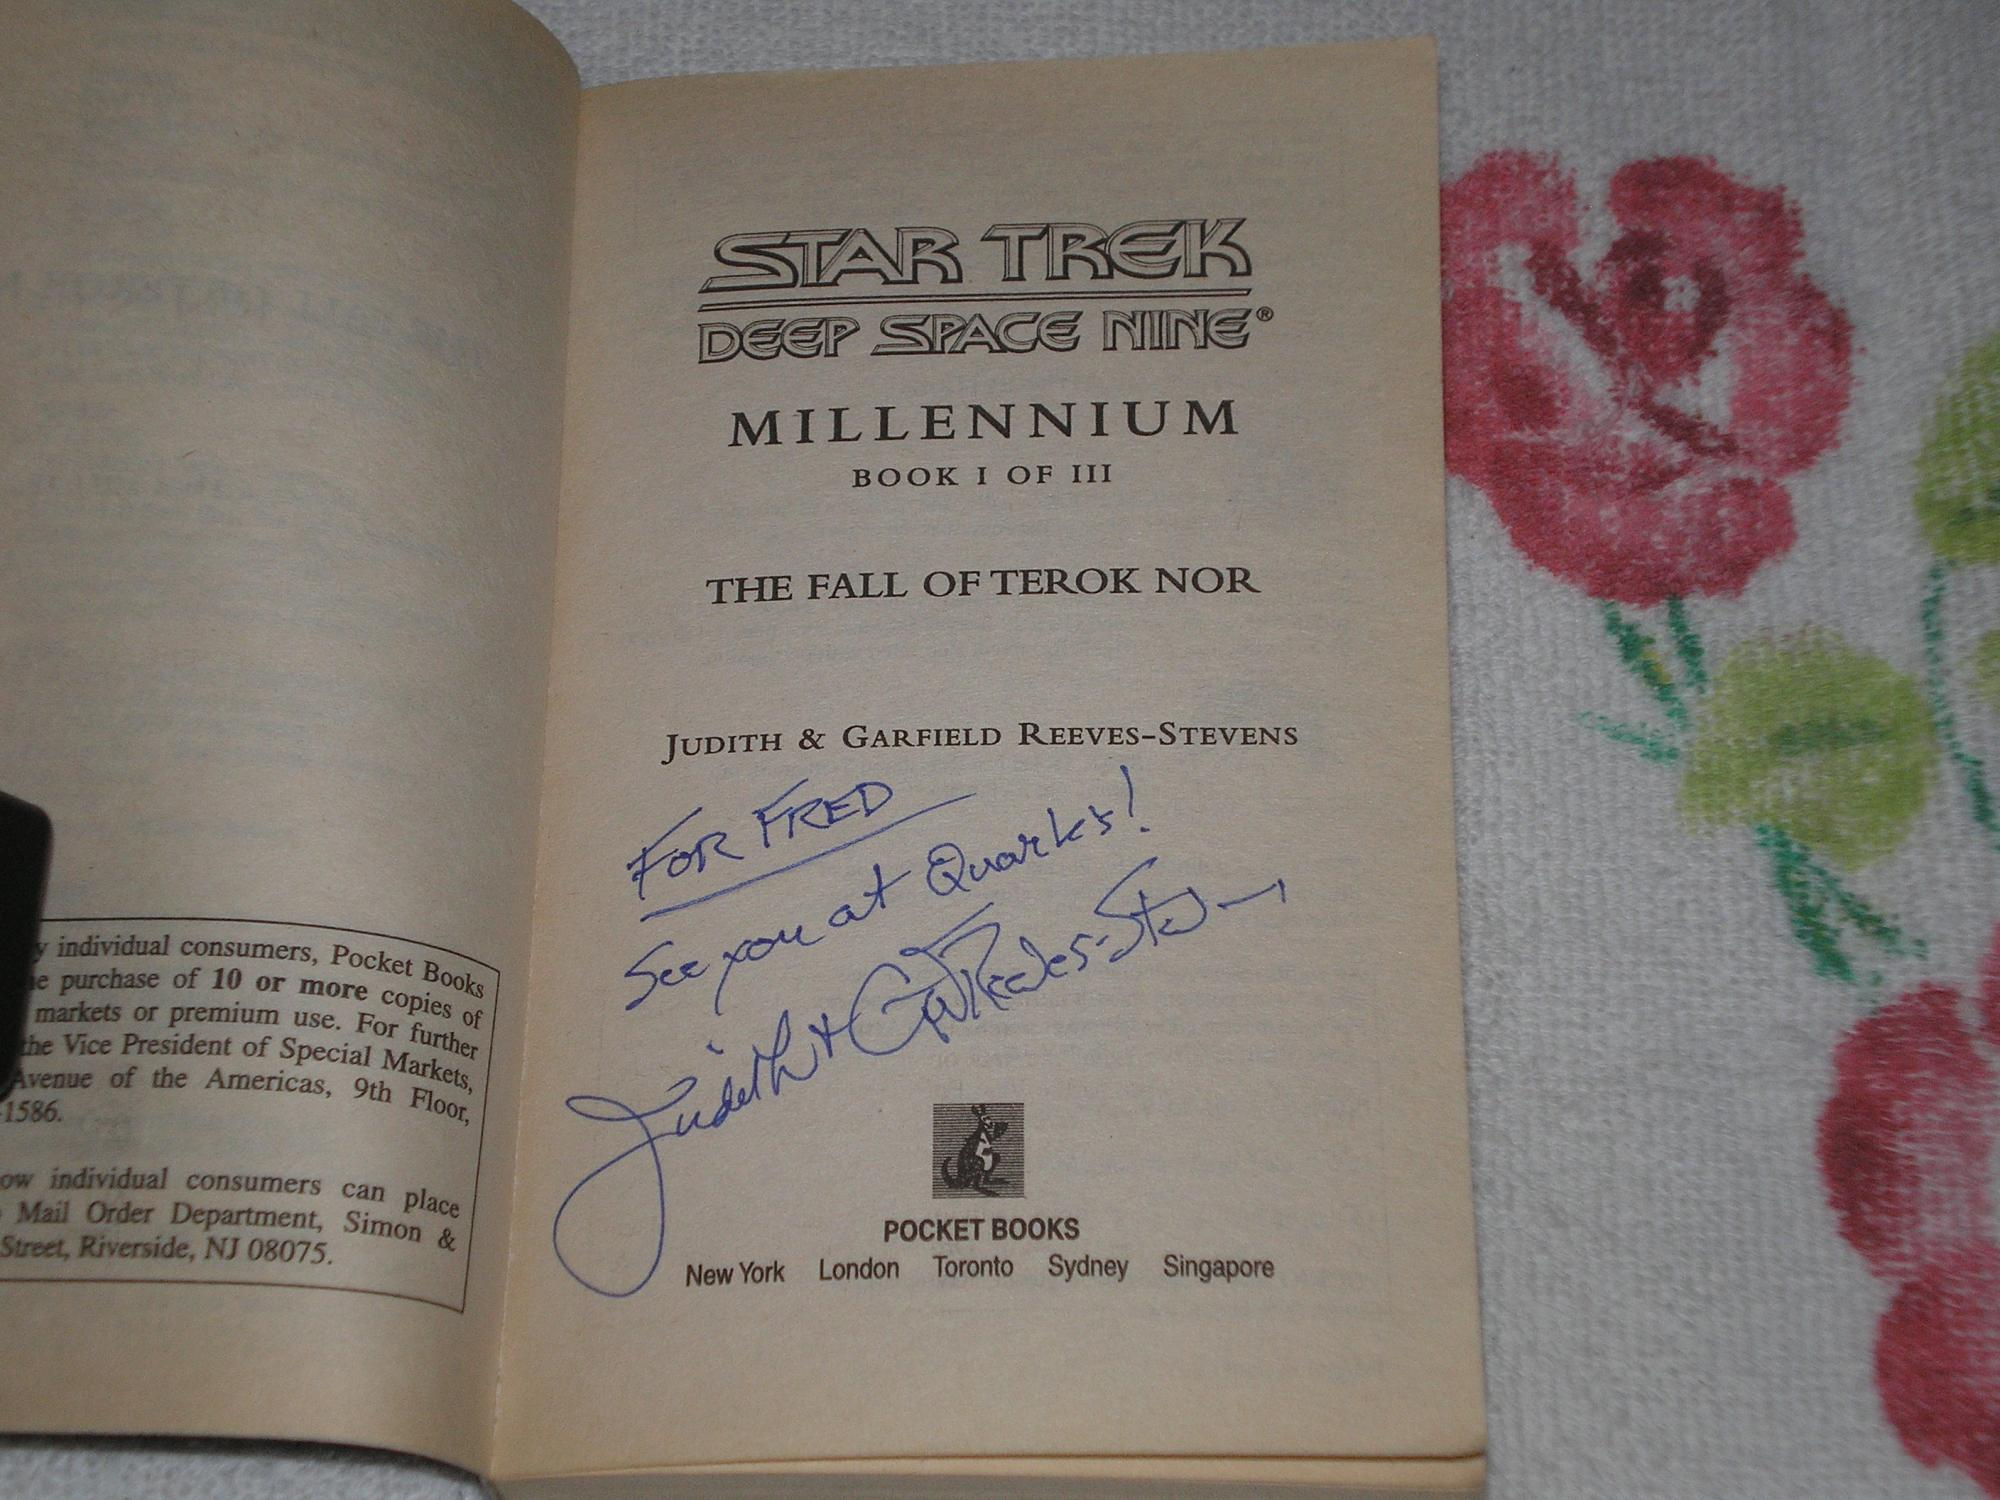 Millennium: The Fall Of Terok Nor Bk. 1 (Star Trek: Deep Space Nine): Signed - Reeves-Stevens, Judith; Reeves-Stevens, Garfield; Judith